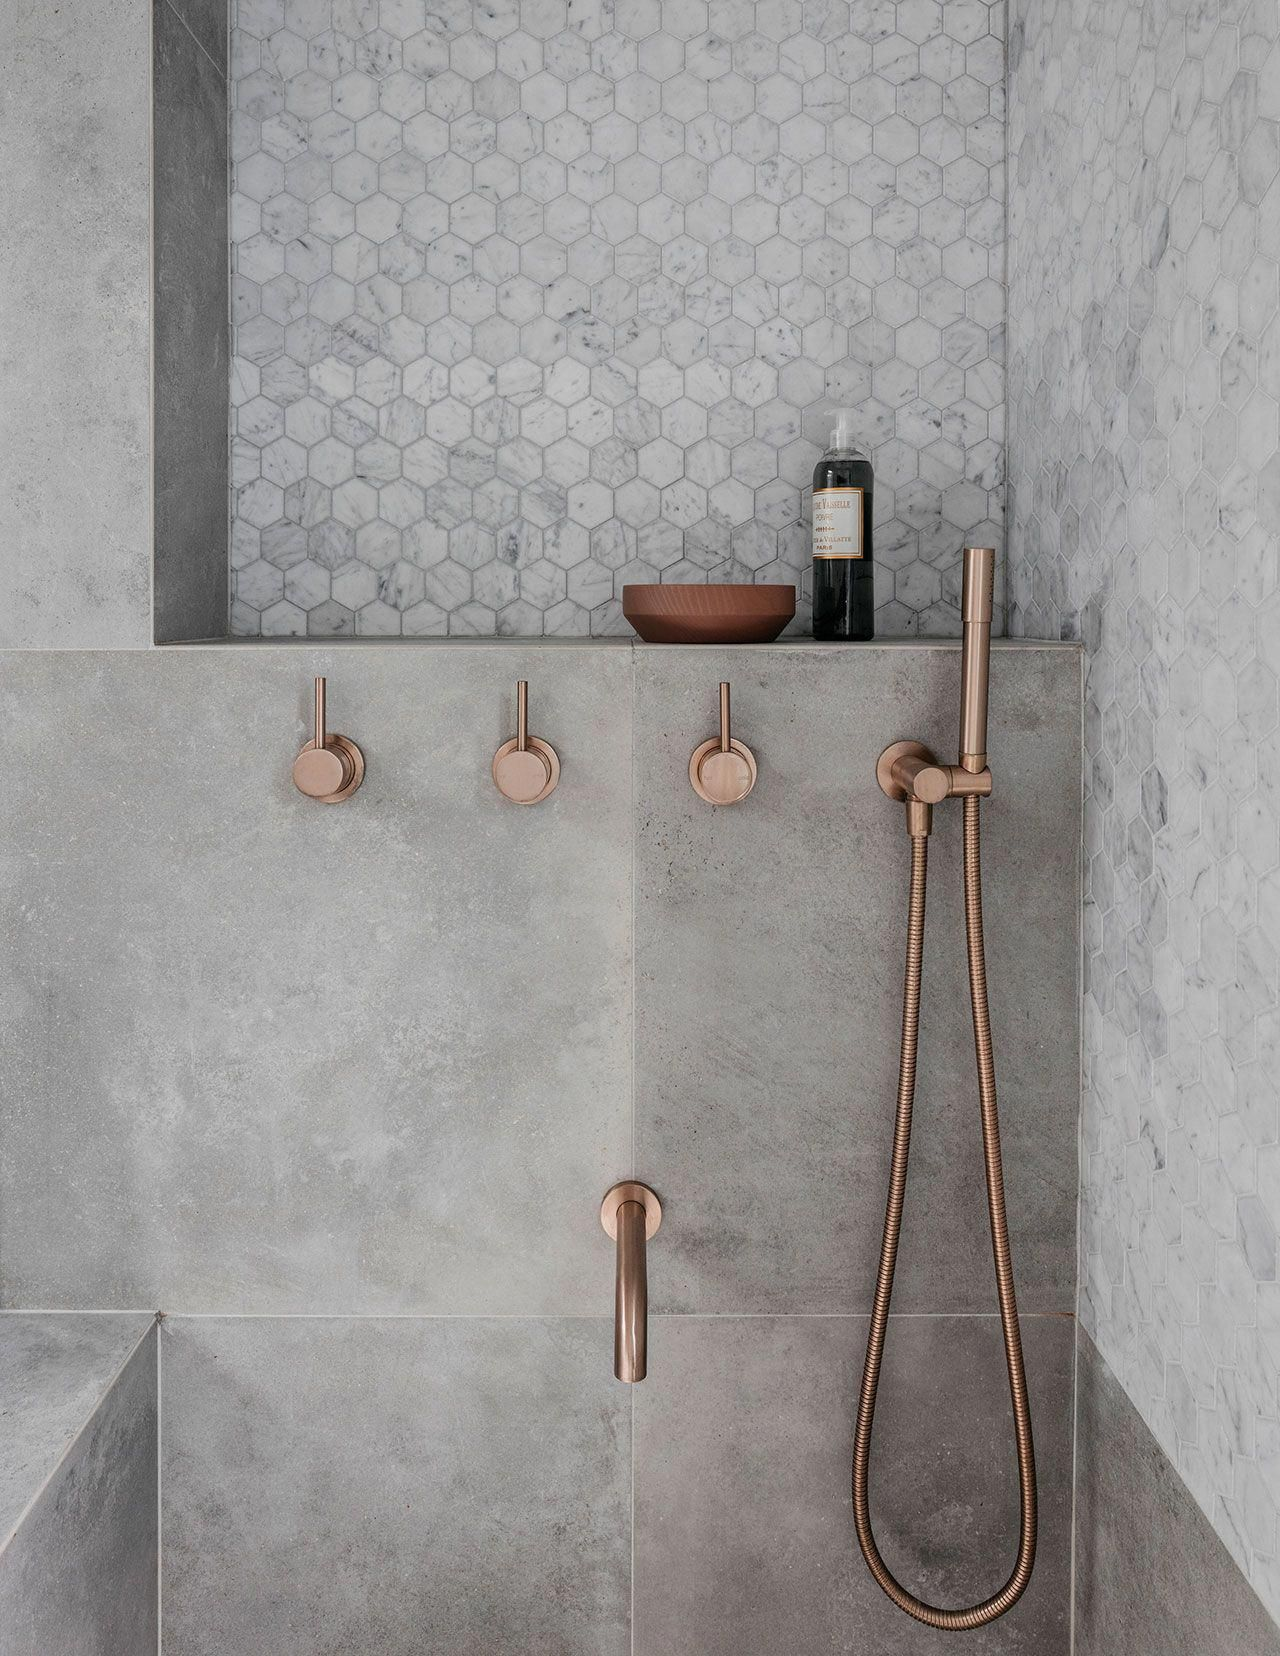 I Am Torn When It Comes To Modern Minimal Design Often Times I Associate It With Cold And Void This Queens Par With Images Gold Bathroom Faucet Shower Niche Gold Bathroom